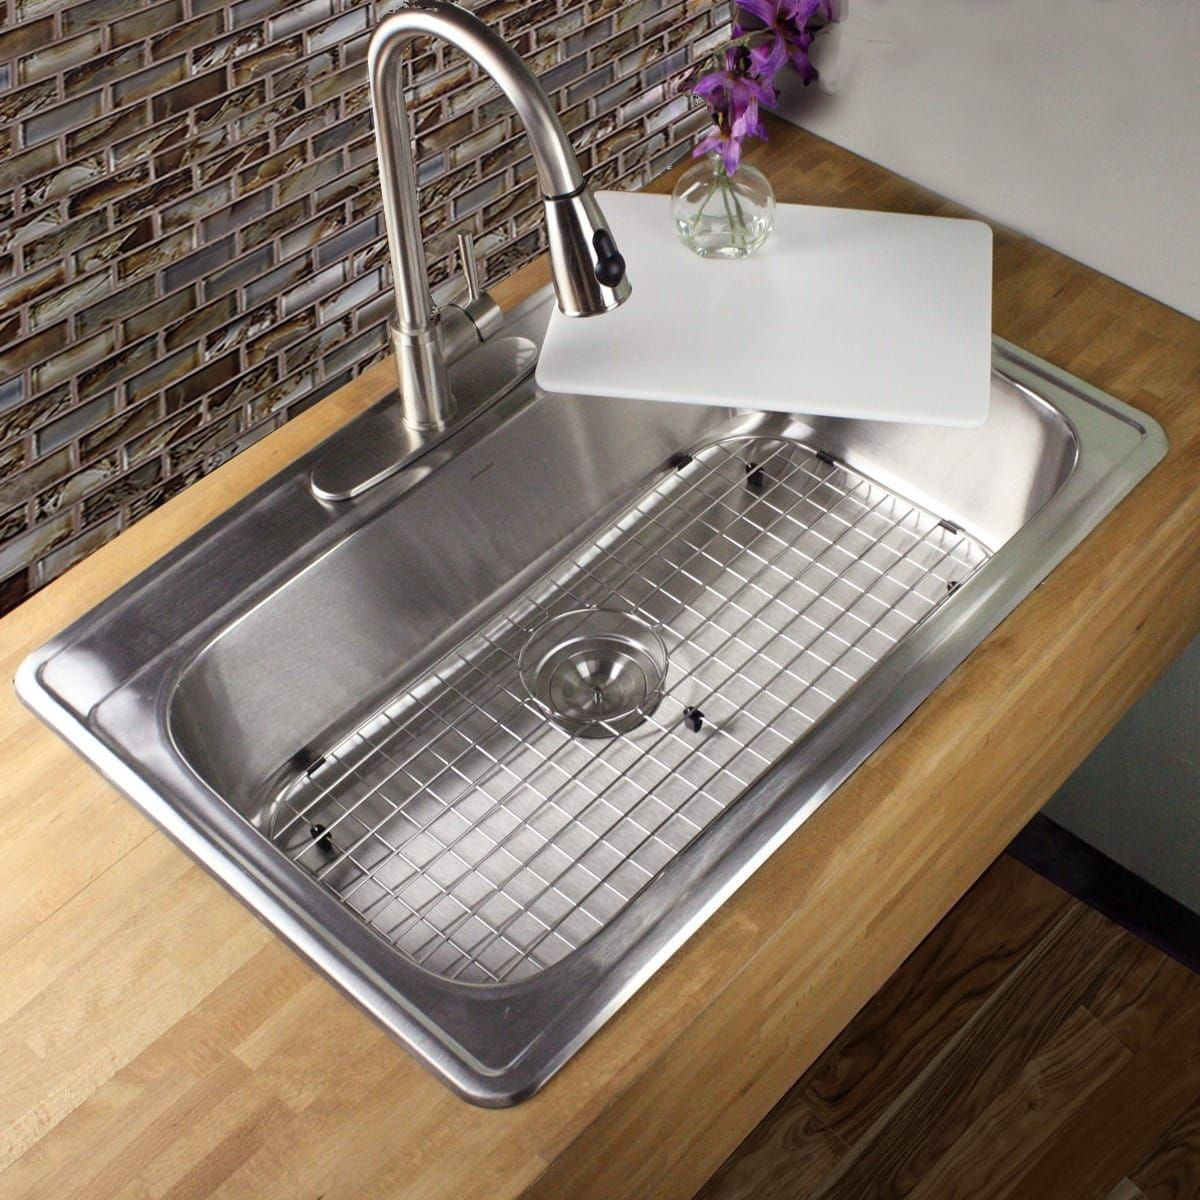 The Kitchen Of The Future Is Yours Today When You Get This Ultramodern Hand Made Zero Radius St Modern Kitchen Sinks Top Mount Kitchen Sink Kohler Kitchen Sink